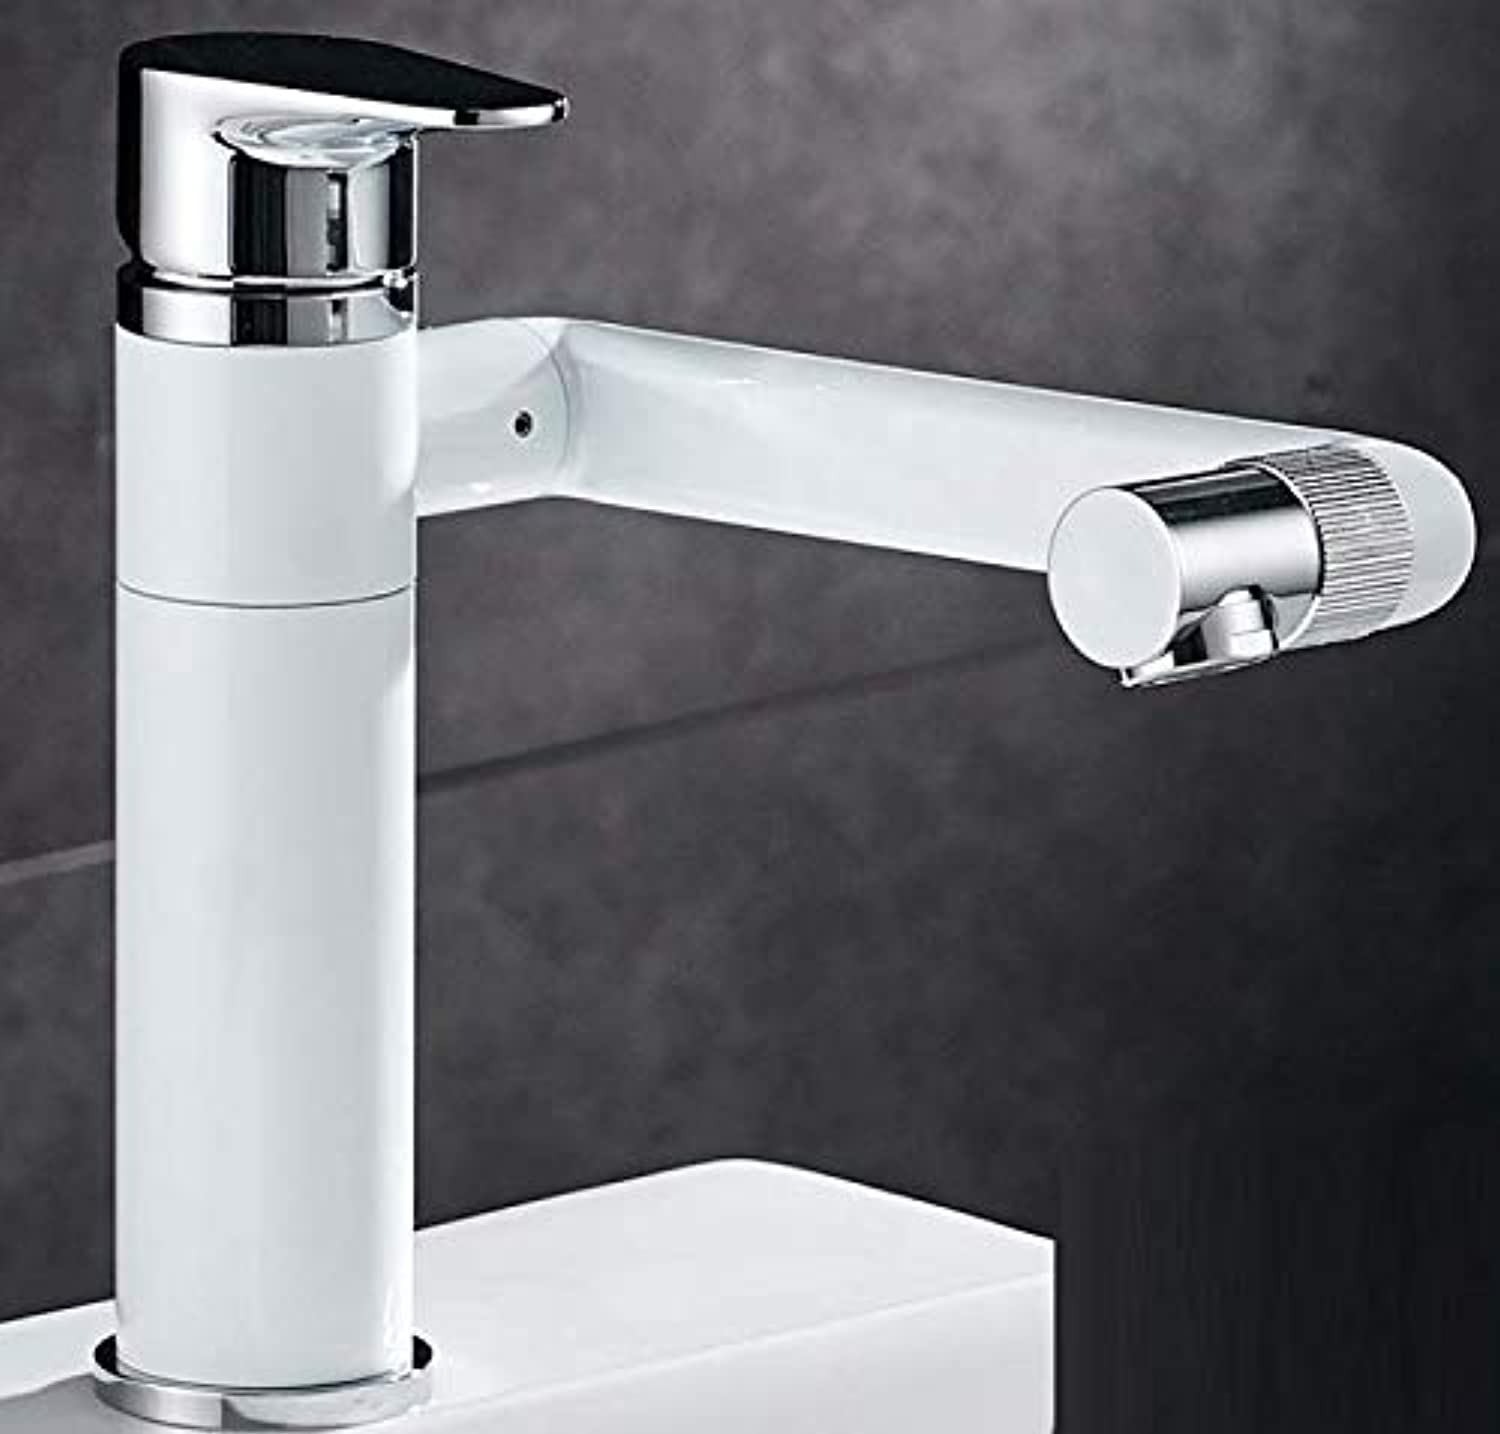 Bathroom Faucet Full Copper Basin Hot and Cold Water Faucet Can Be redated On The Upper and Lower Basins, High Faucet, Bathroom, Washbasin, White Paint